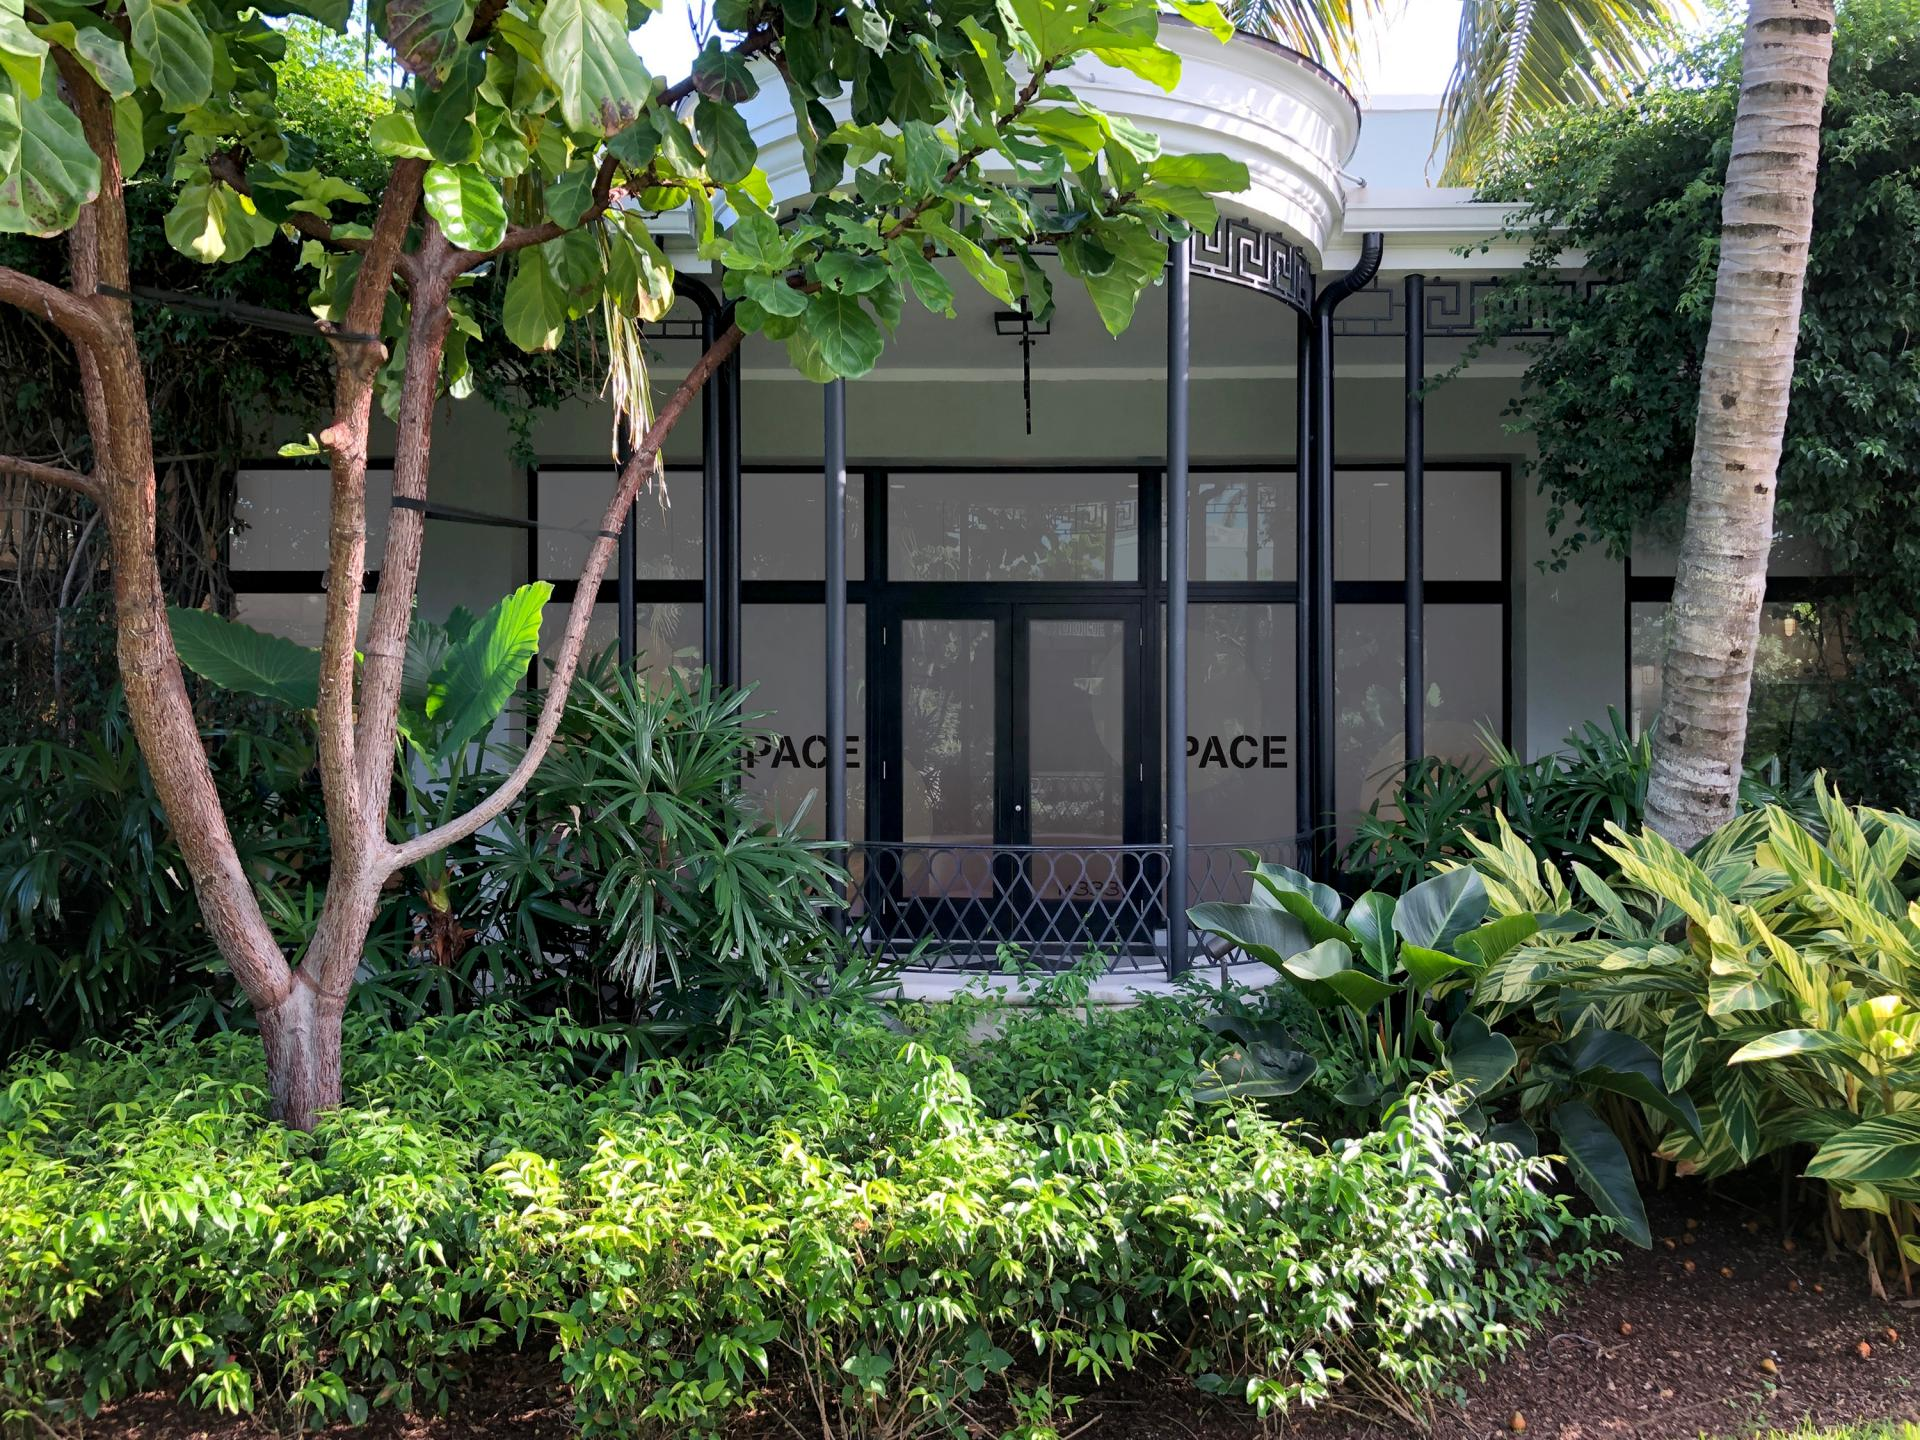 Pace Gallery in Palm Beach Courtesy of The Royal Poinciana Plaza